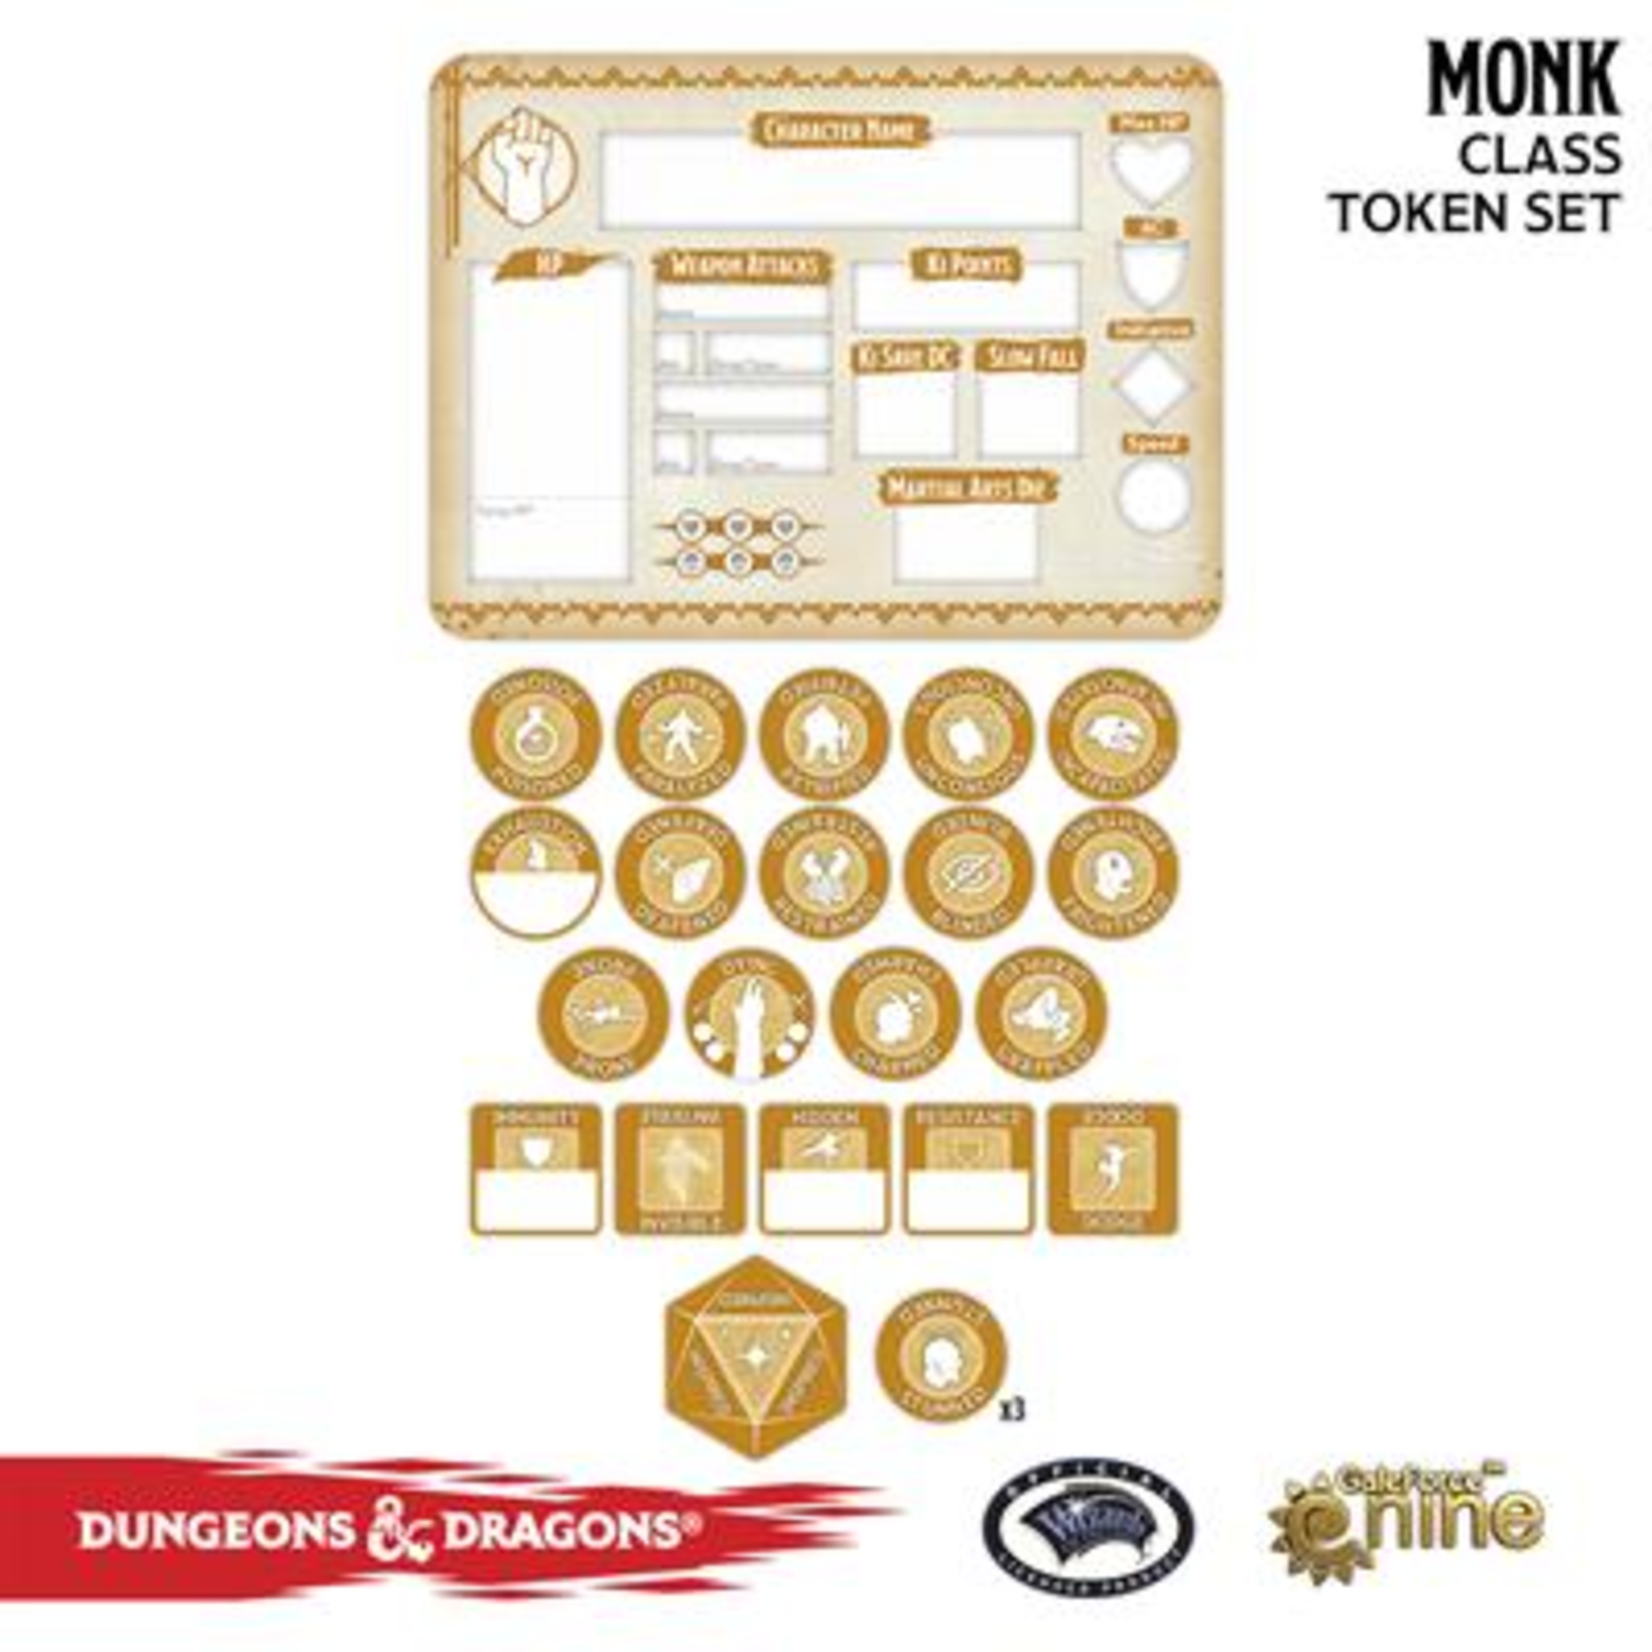 Gale Force Nine Dungeons & Dragons 5th Edition Token Set & Player Board: Monk